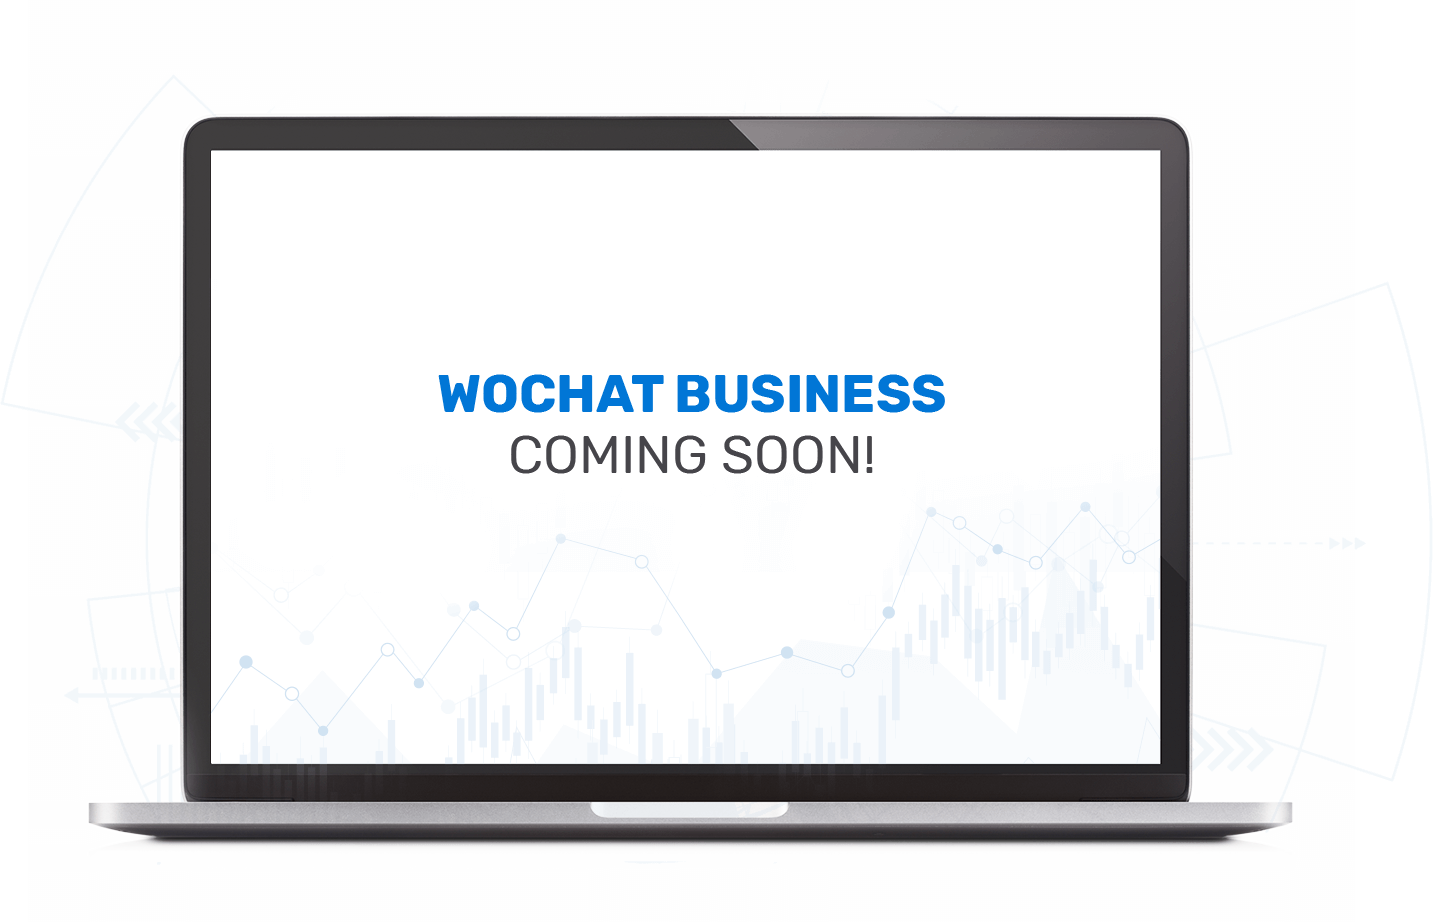 WOCHAT BUSINESS - COMING SOON